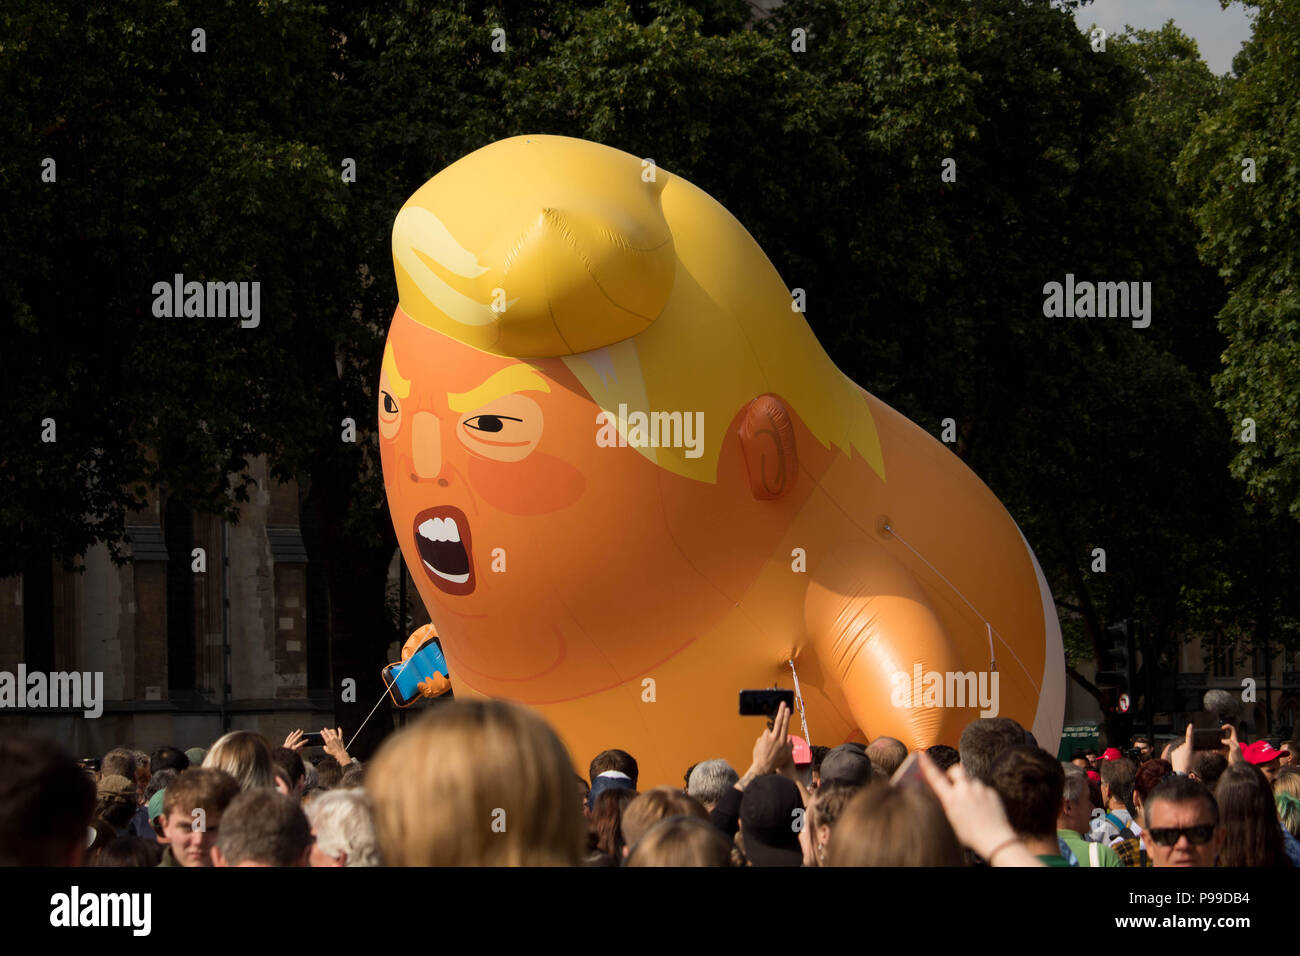 'STOP TRUMP' protest march in Parliament Square Gardens as an angry caricature of President Donald Trump faces the crowd. London, UK 13/7/18. Stock Photo